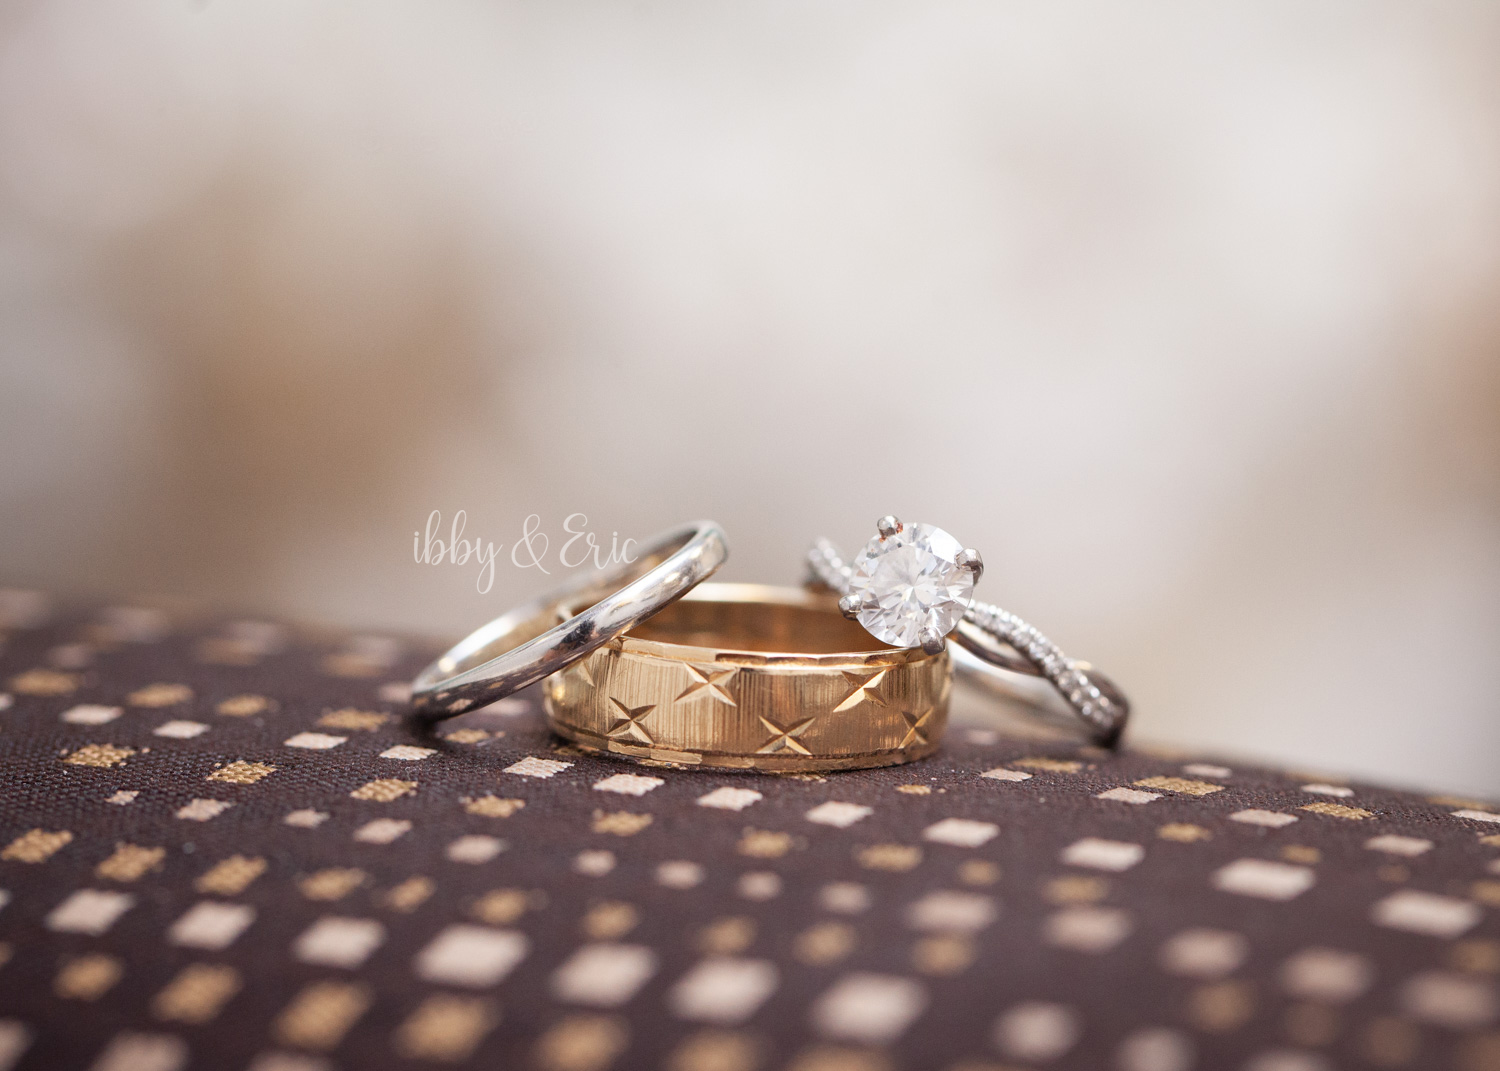 Macro, detail shot of the diamond engagement ring and wedding bands.